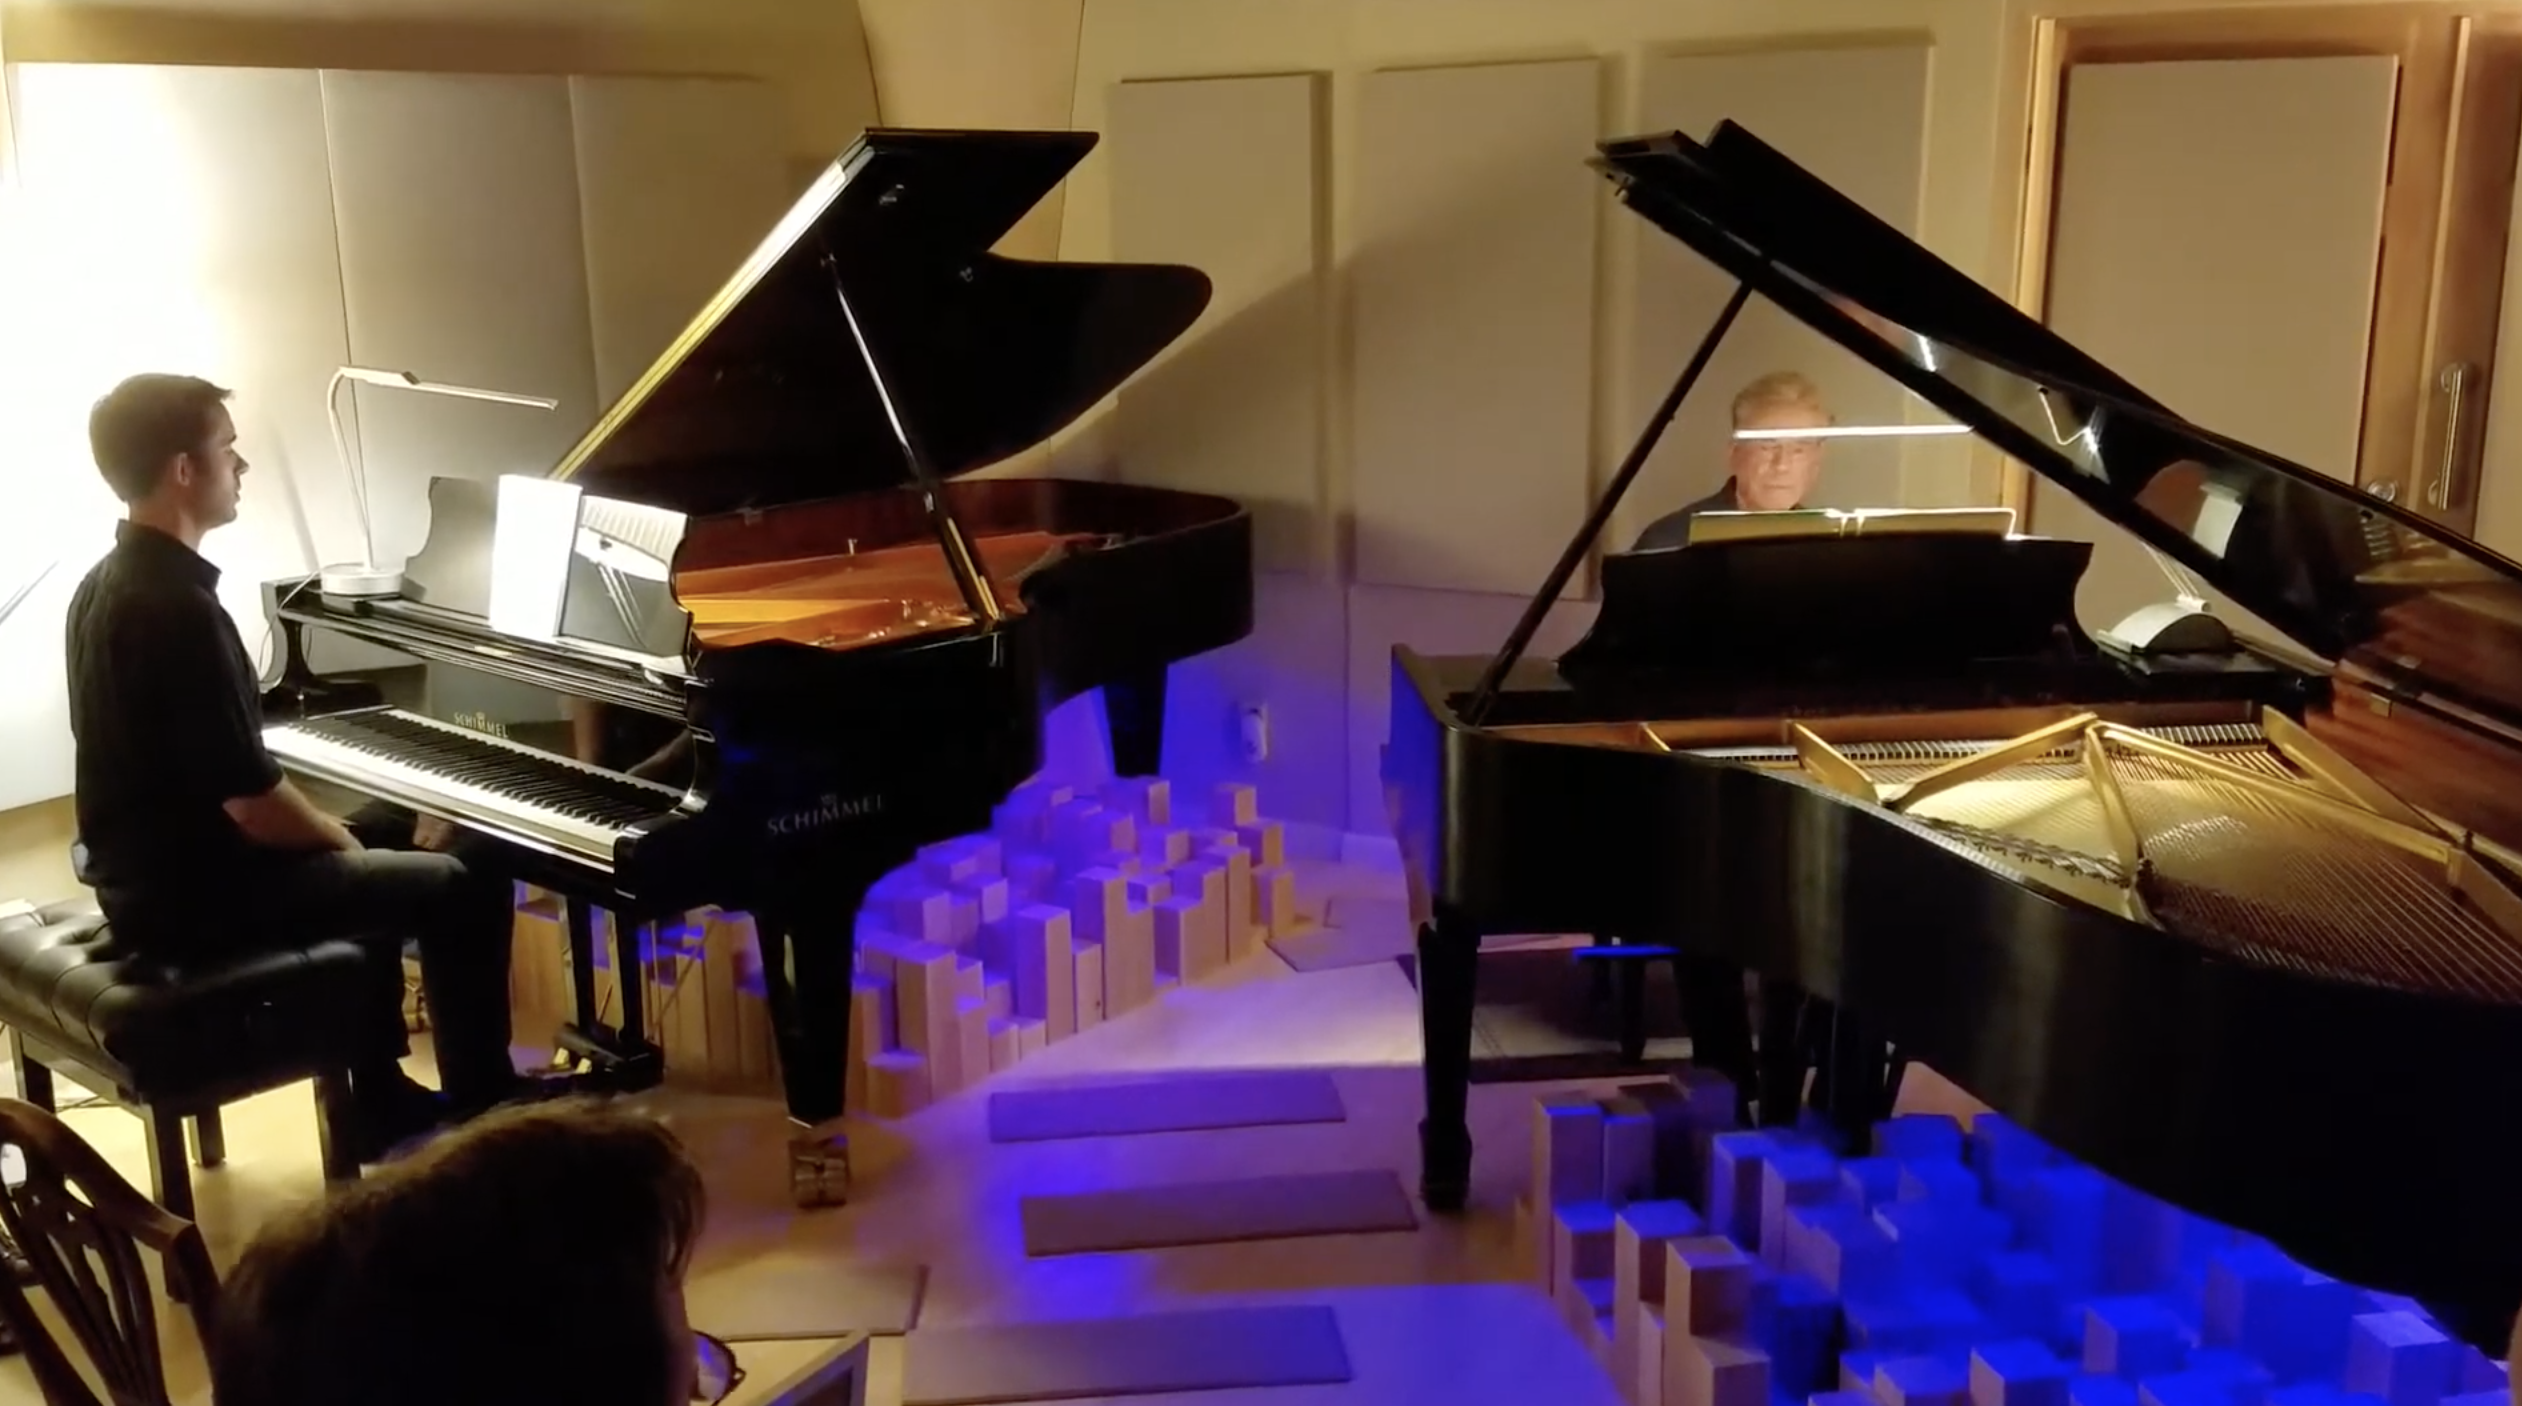 Rhapsody in Blue, Abridgment for 2 Pianos by Lee Galloway, with Andrew King